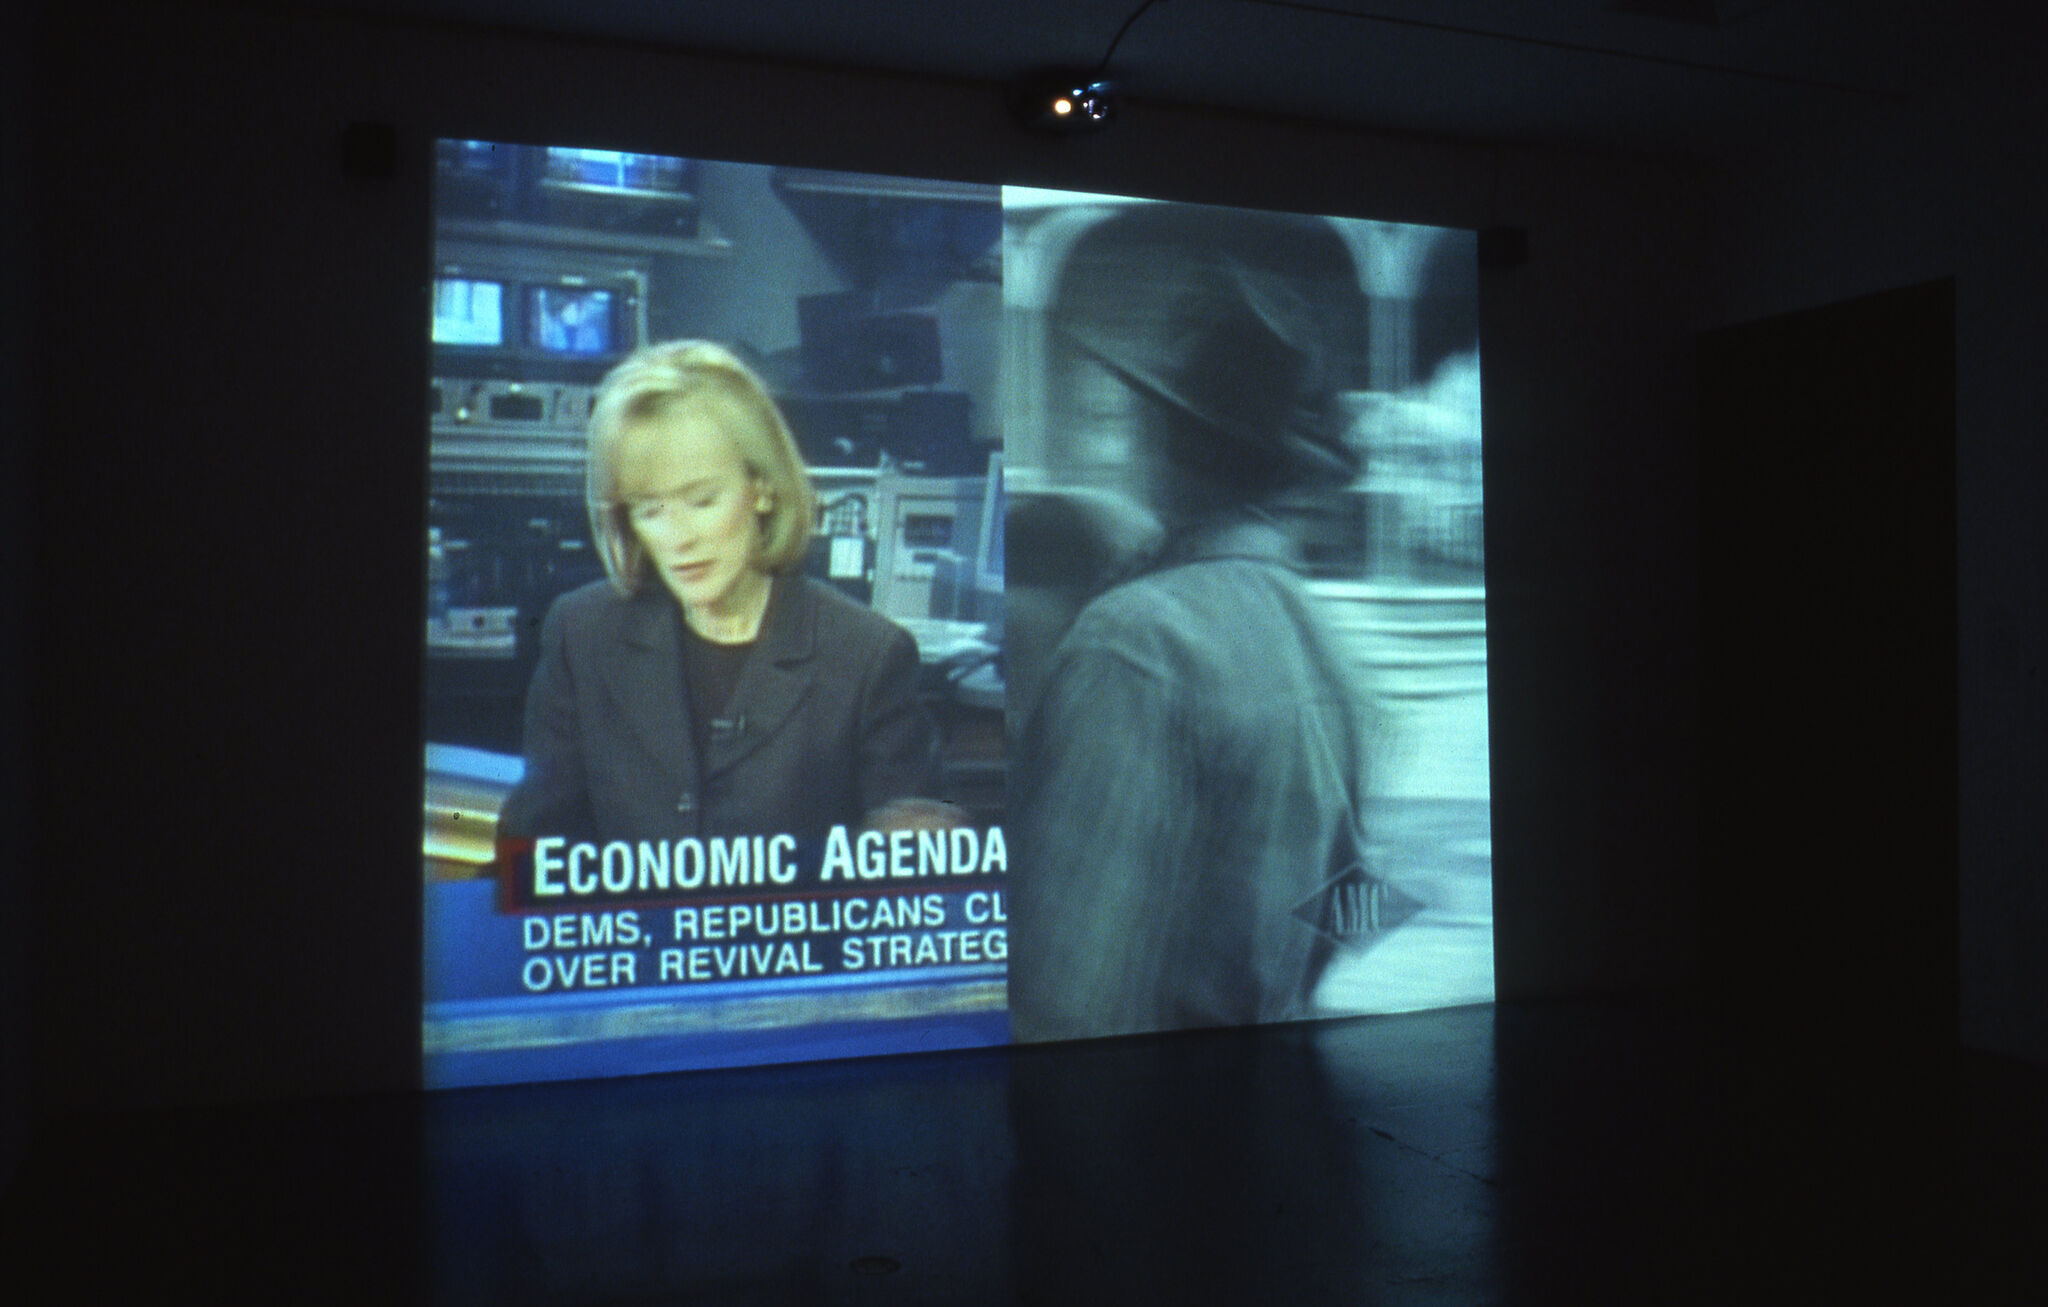 A screen split into two, with one side showing a news report and the other showing a black and white view of a figure passing by.